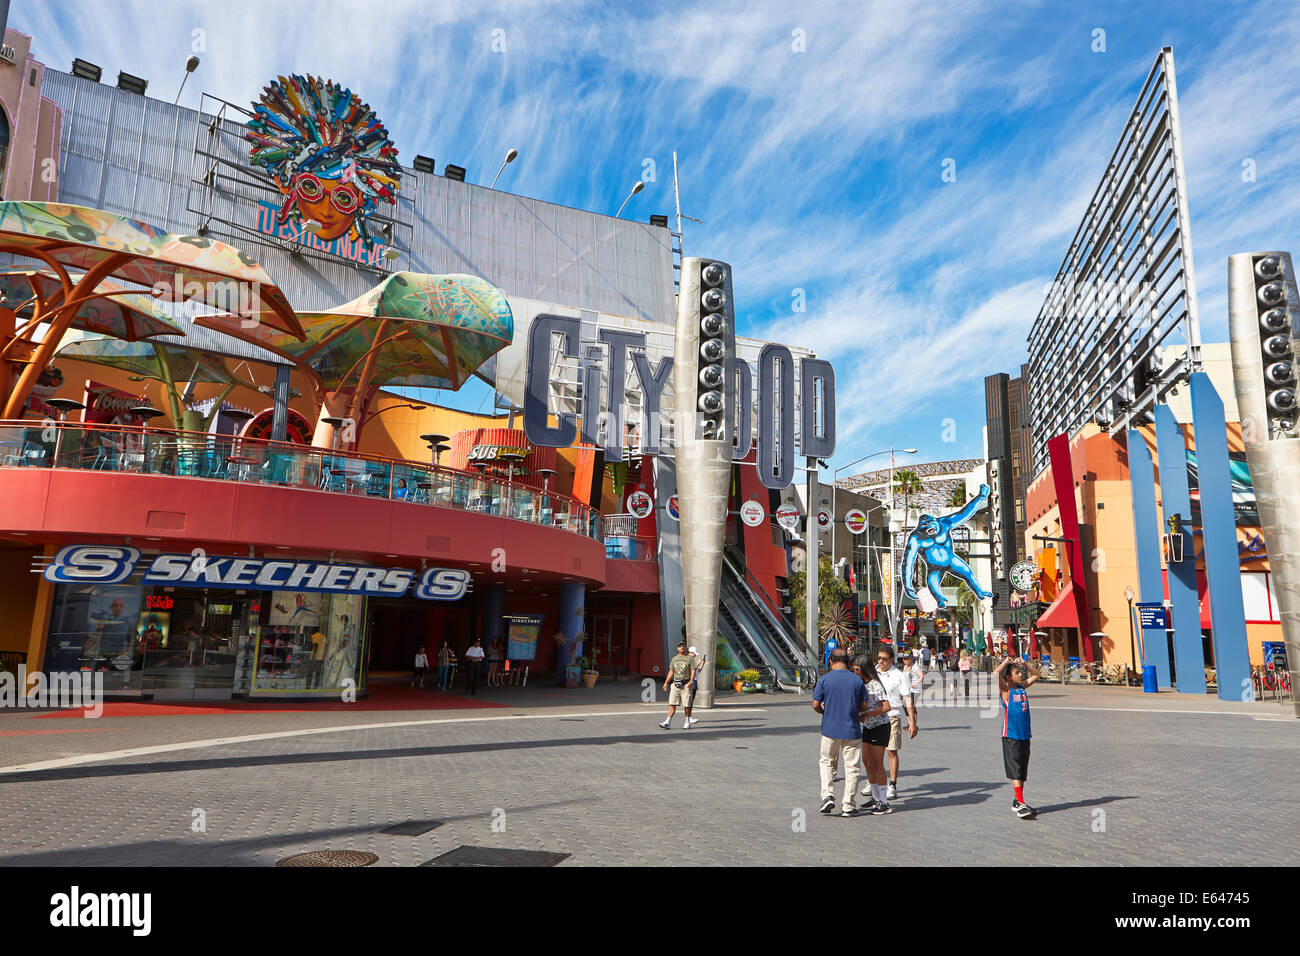 Universal City street scene. Hollywood, Los Angeles, California, USA. - Stock Image